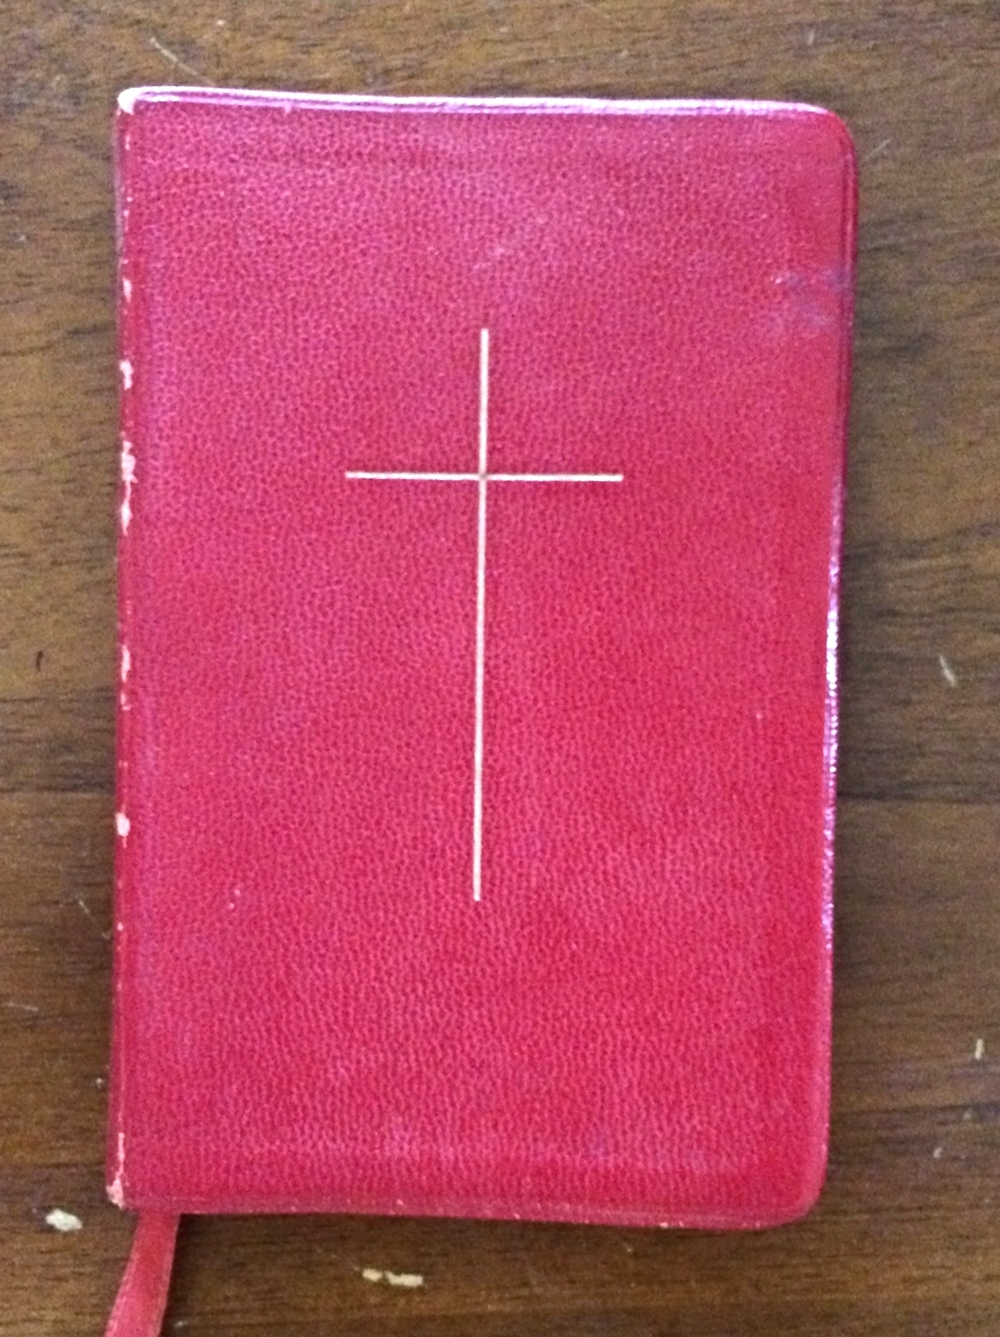 My Great grandfather's (Humphrey Finney) Book of Common Praryer